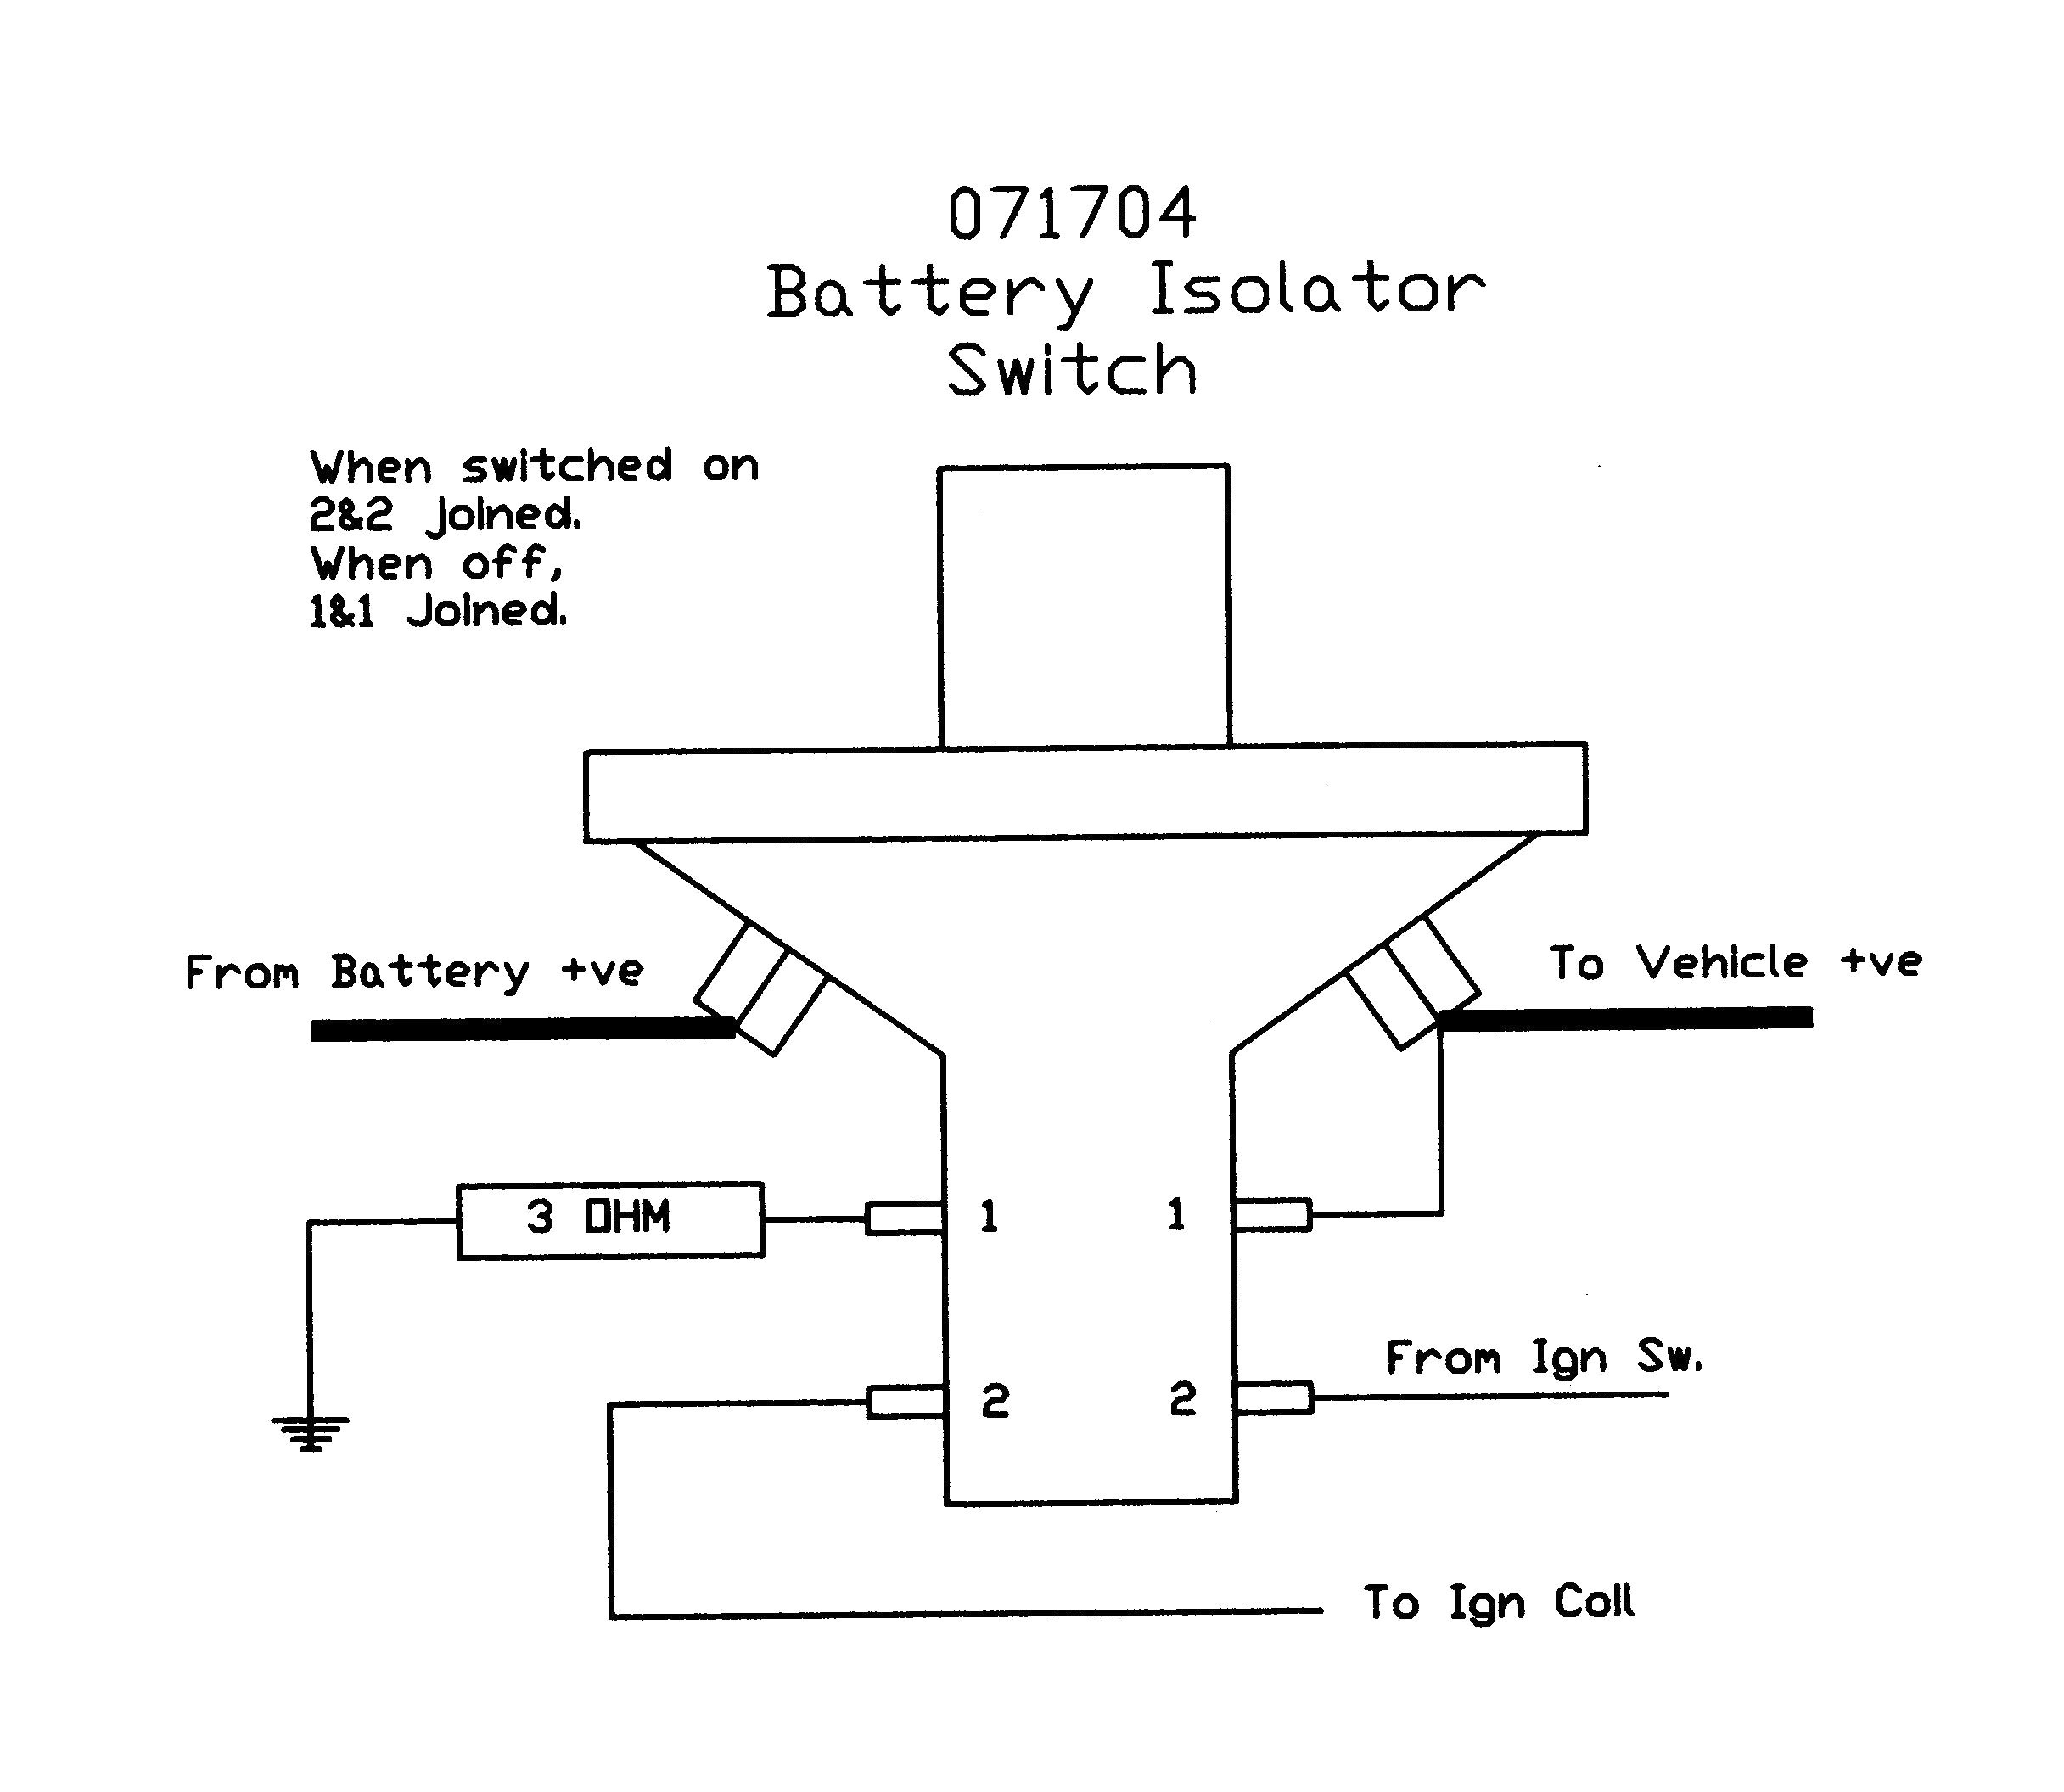 stinger battery isolator wiring diagram Collection-Battery isolator Wiring Diagram Unique Boattery isolator Switch Wiring Diagram Dual Marine Disconnect Boat 4-i